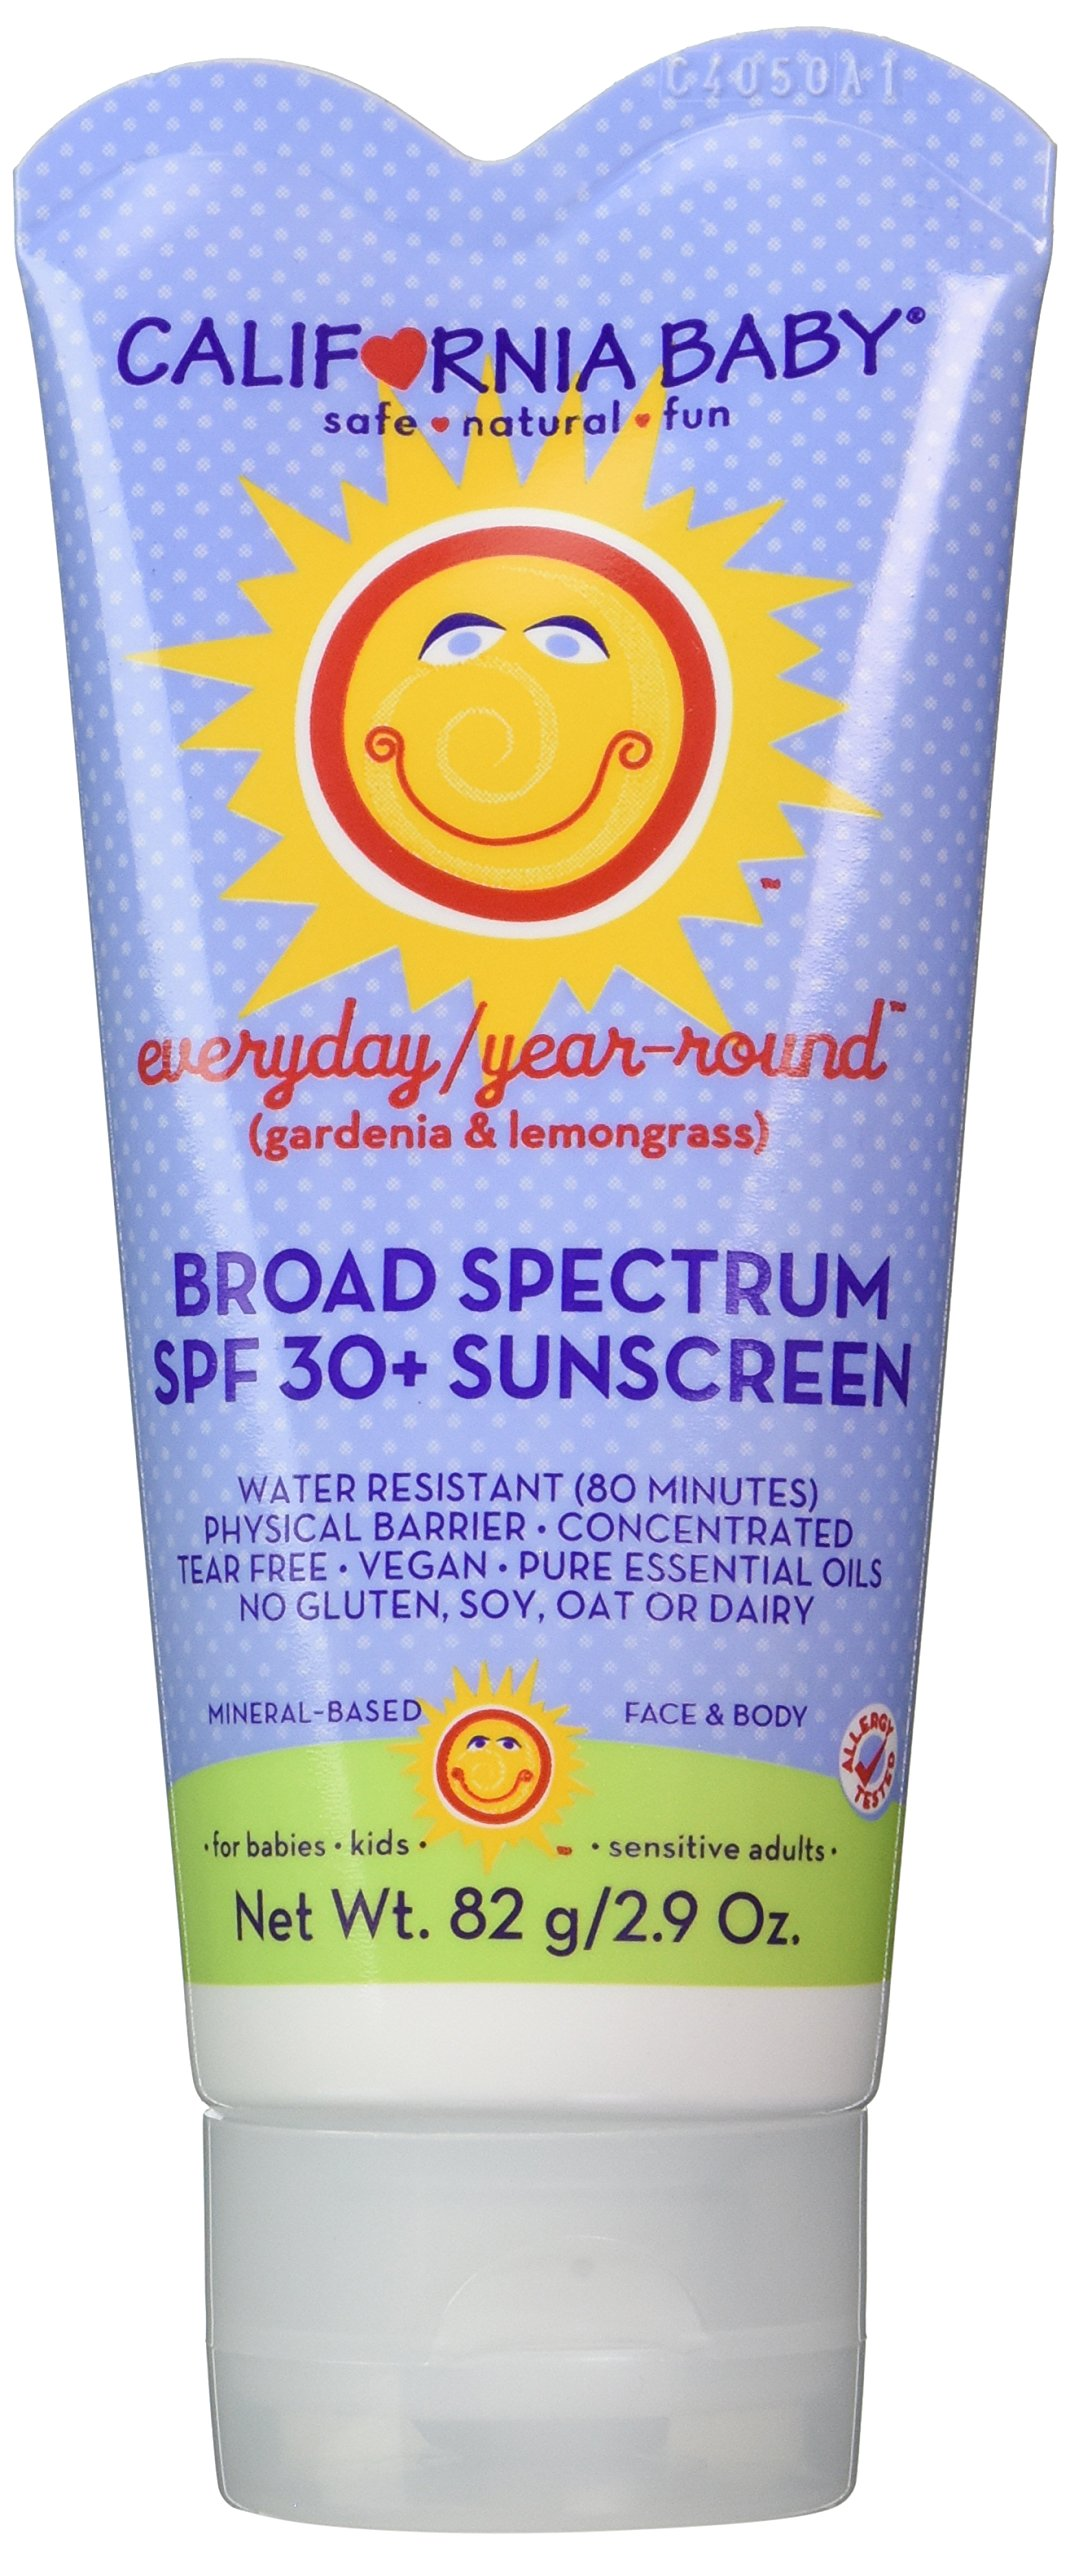 California Baby SPF30+ Sunscreen Lotion, Everyday/Year Round, Water Resistant and Hypo-Allergenic, 2.9 Ounce by California Baby